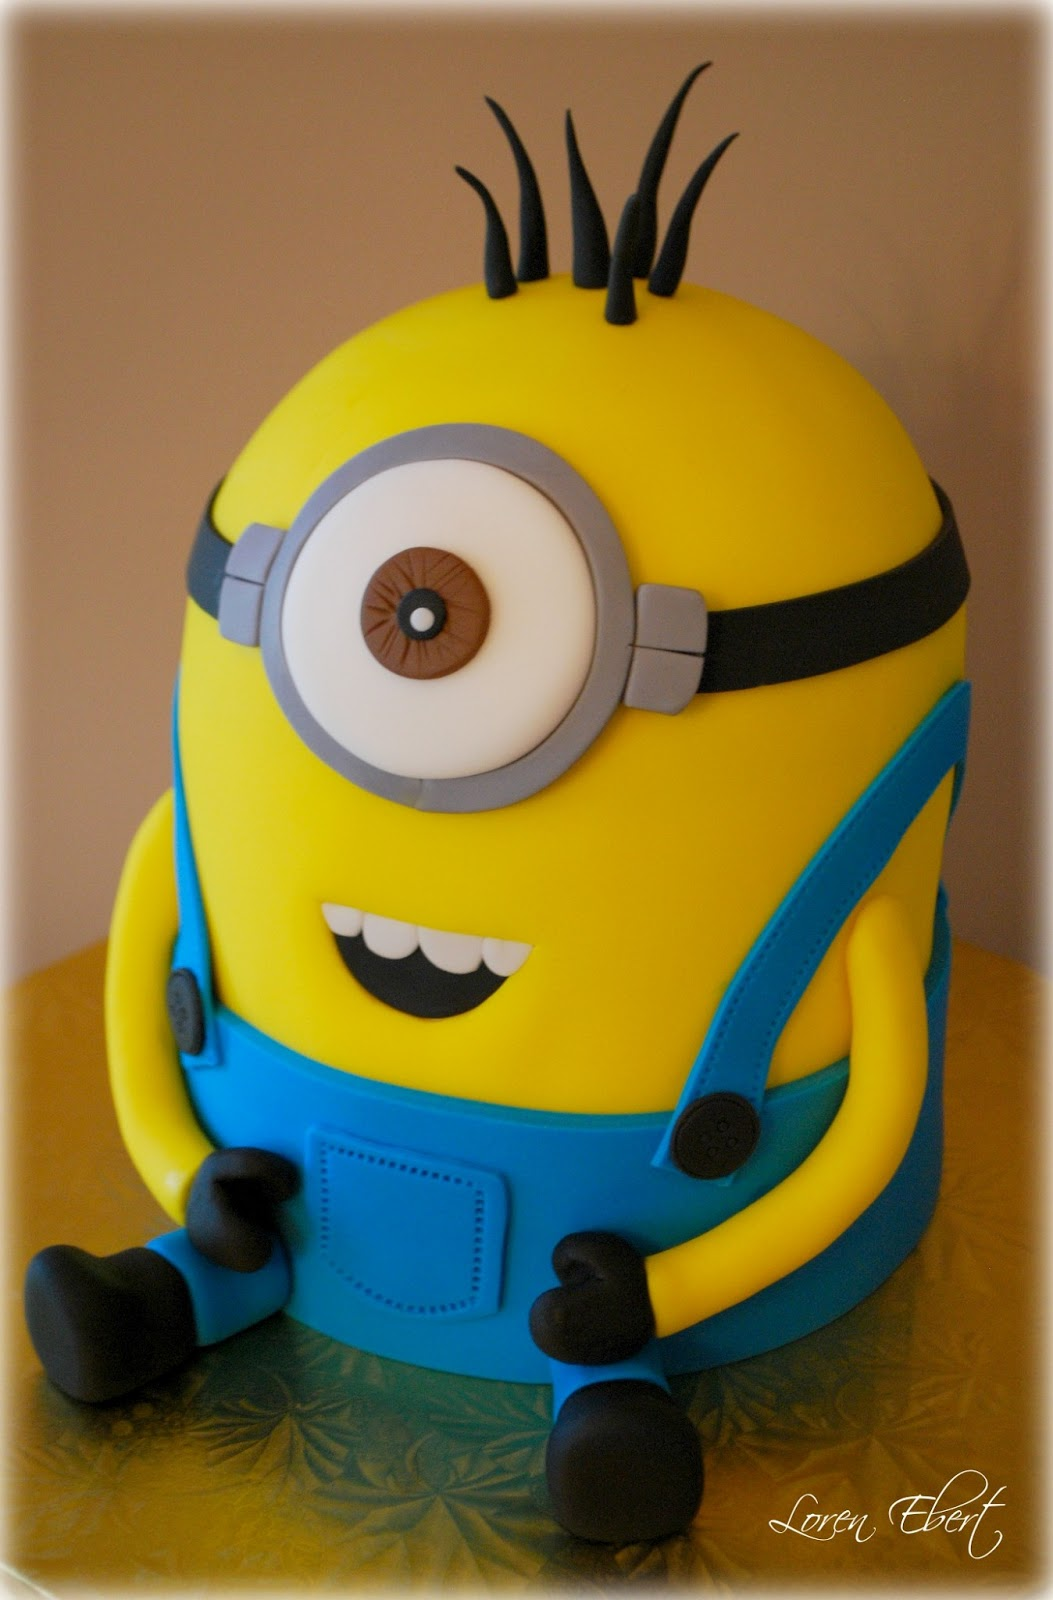 Despicable Me Cake by Loren Ebert   CakeJournal.com